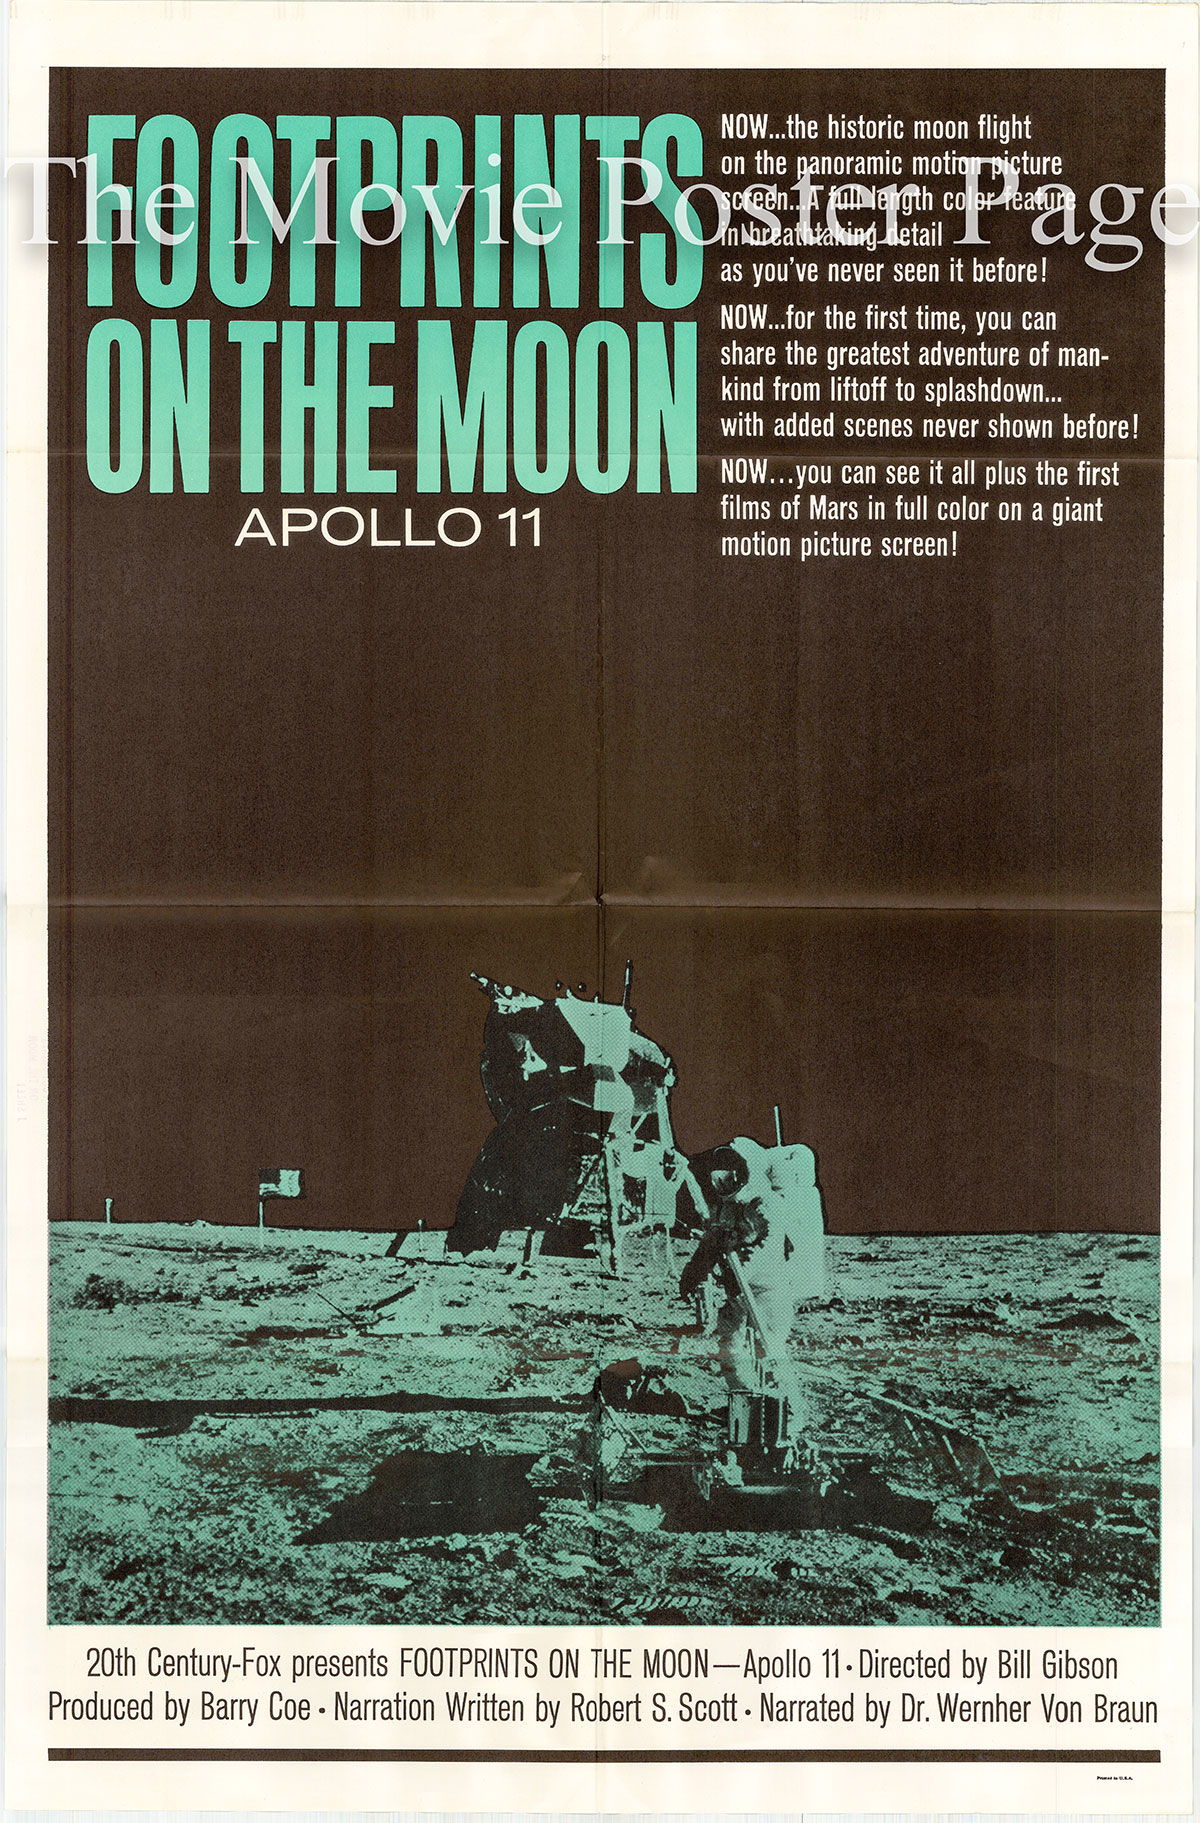 Pictured is a US one-sheet poster for the 1969 Bill Gibson film Footprints on the Moon: Apollo 11 narrated by Wernher von Braun.